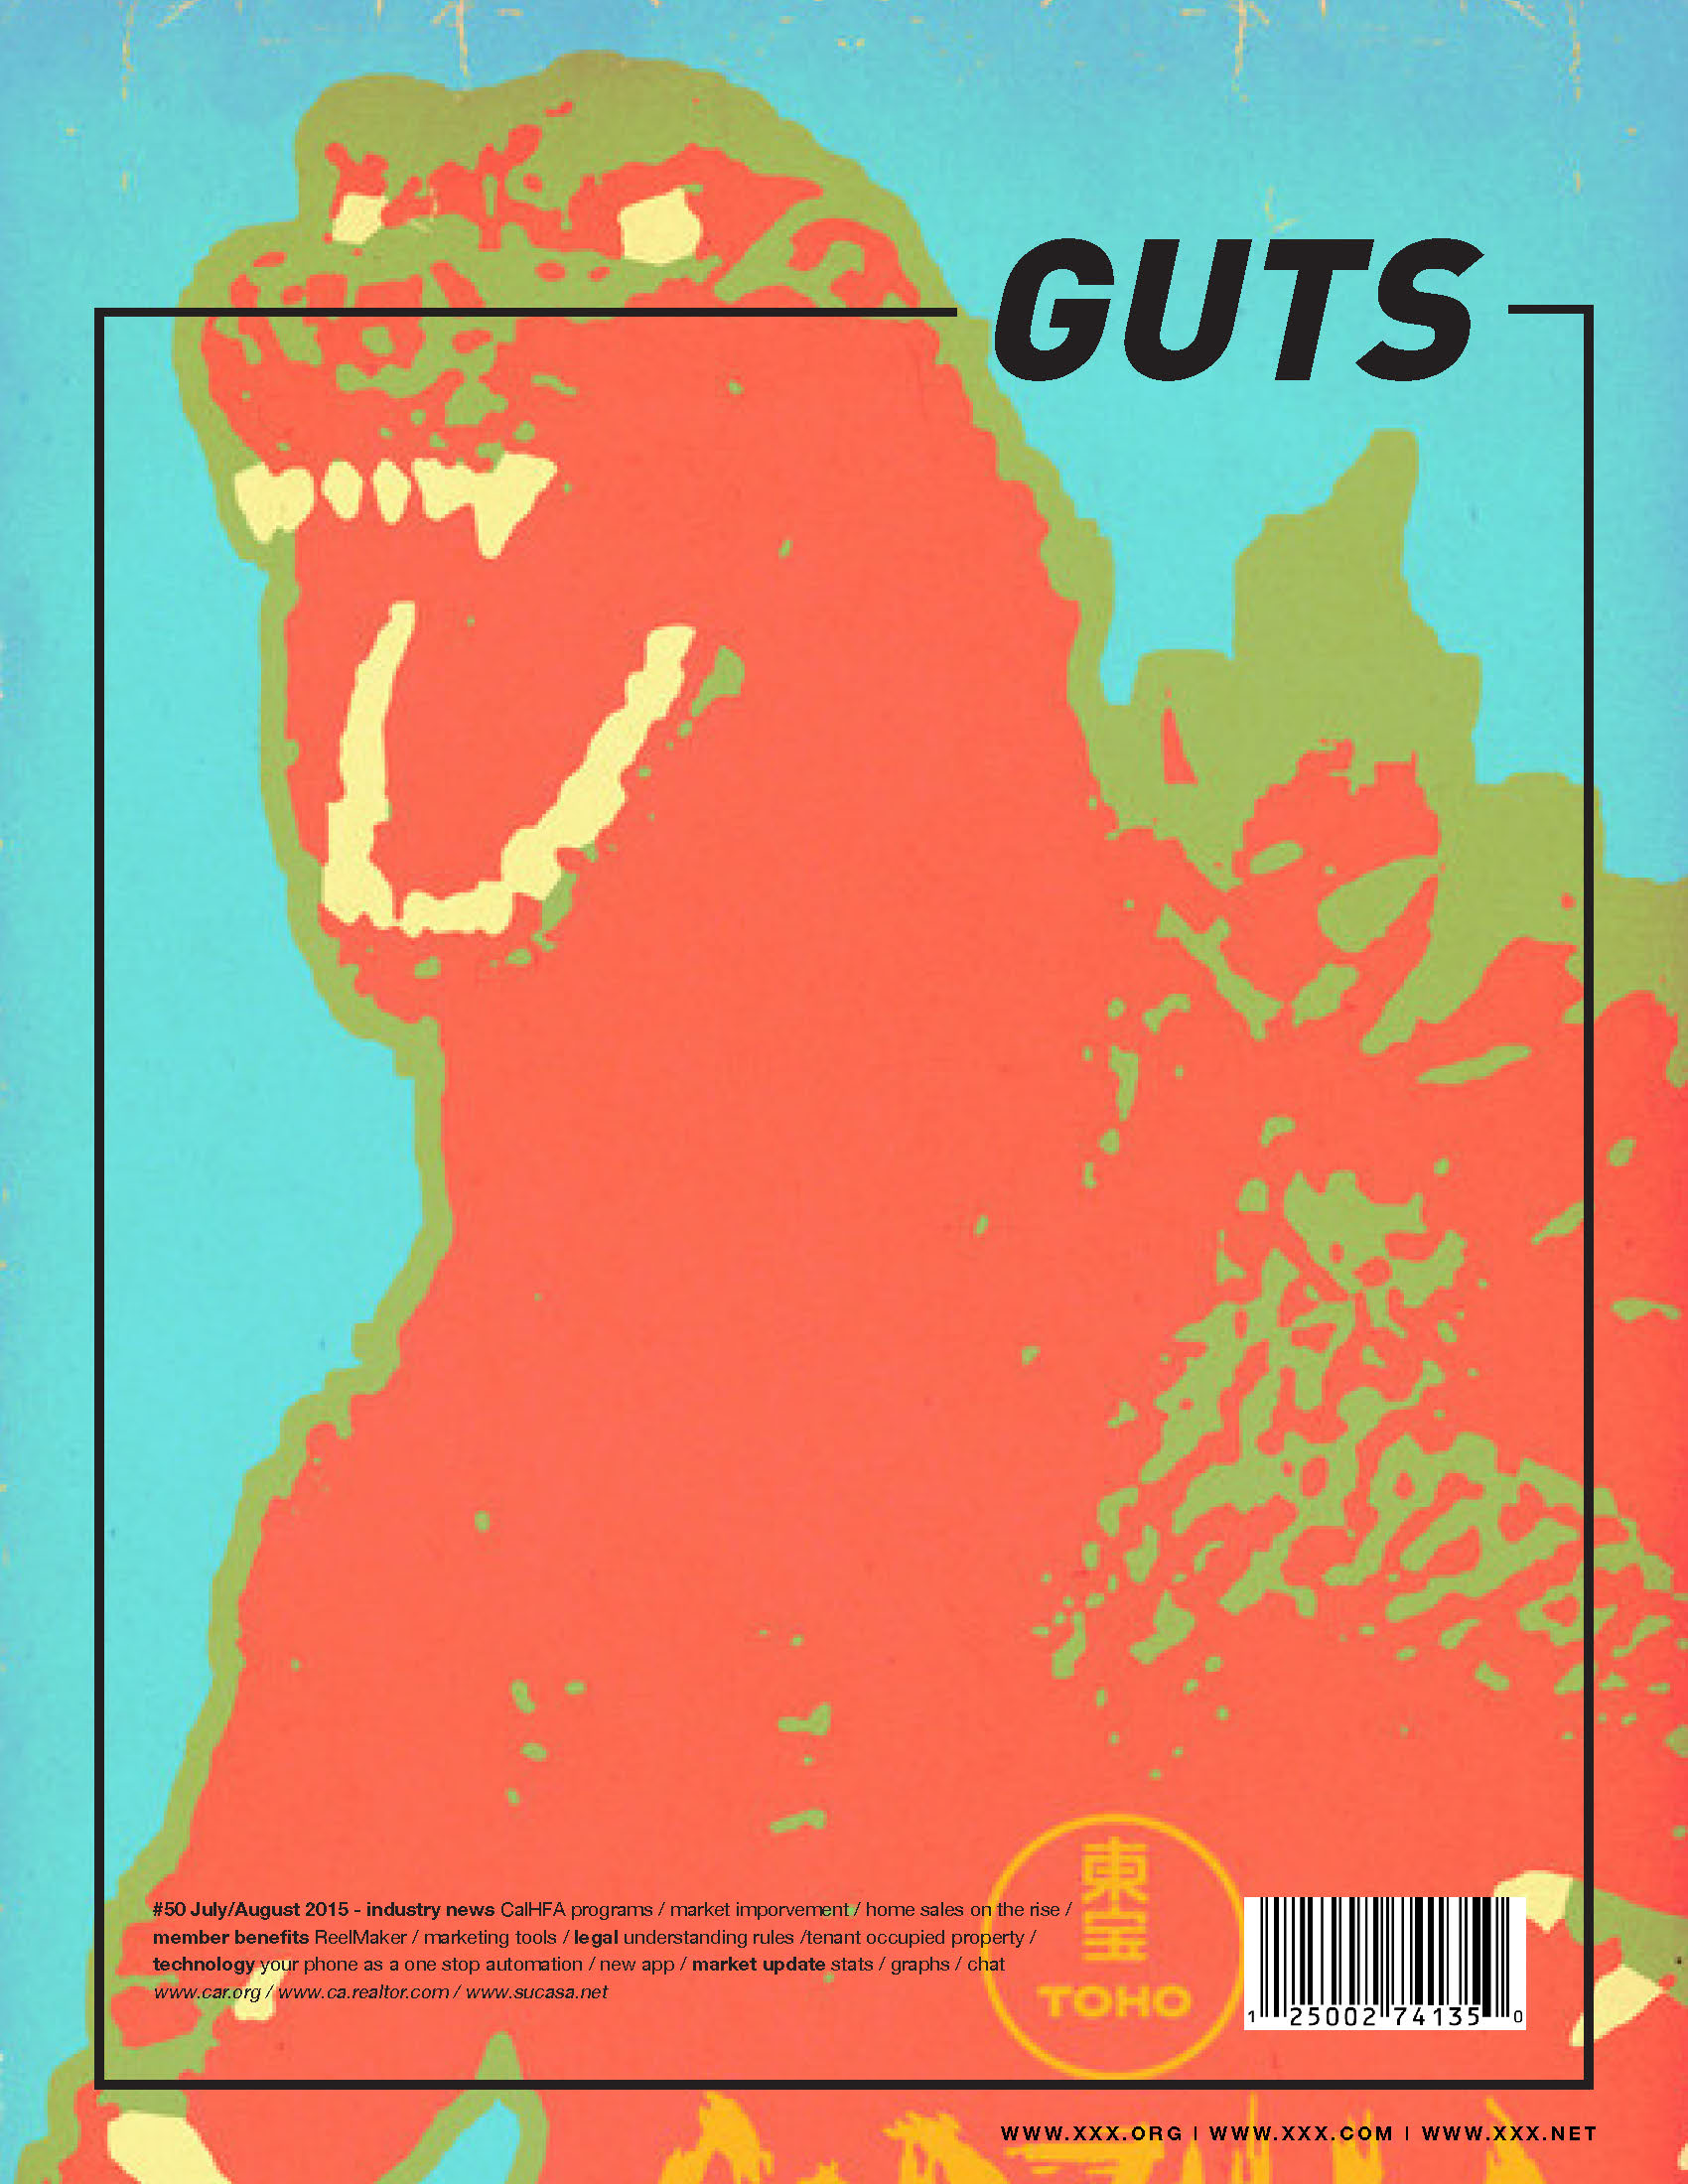 Guts_Covers_Page_29.jpg